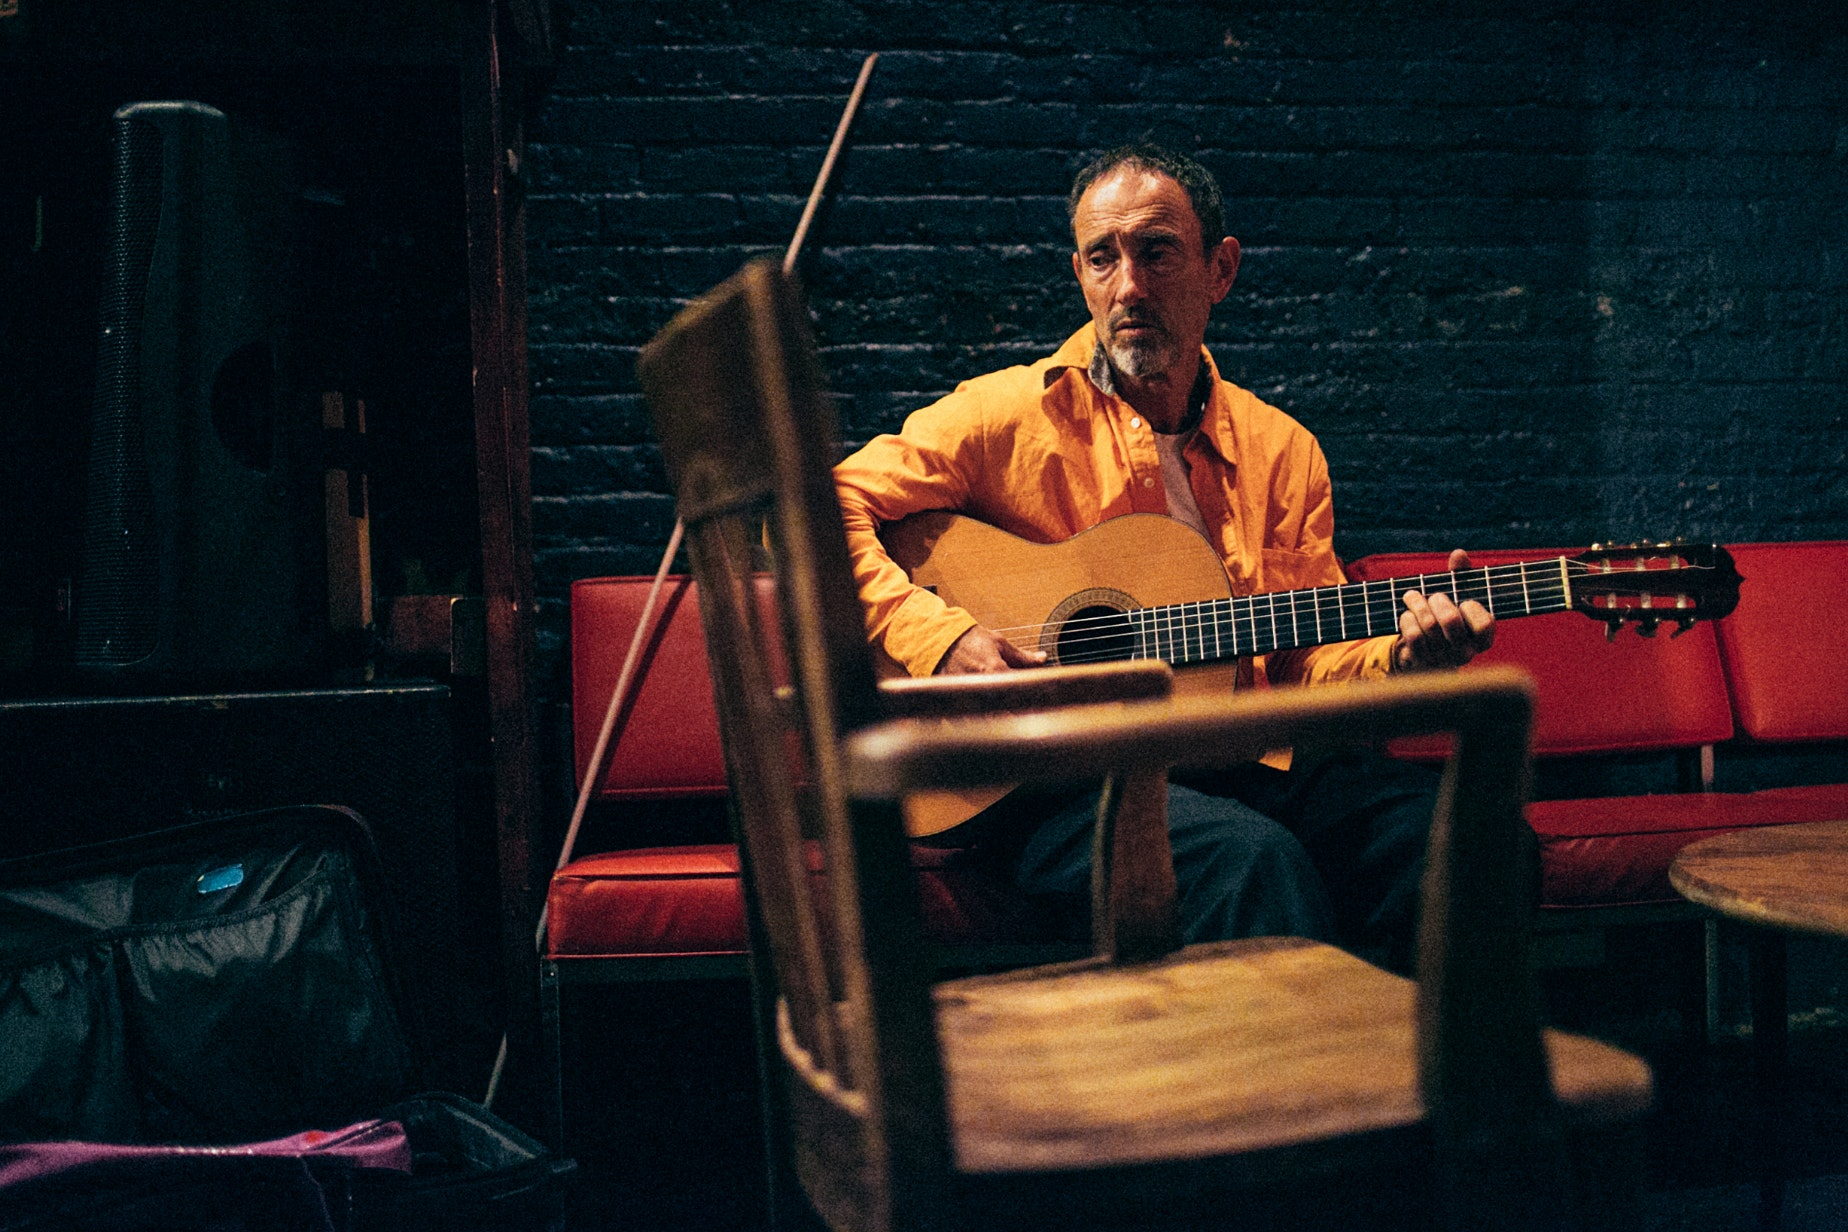 JONATHAN RICHMAN featuring TOMMY LARKINS on the drums!